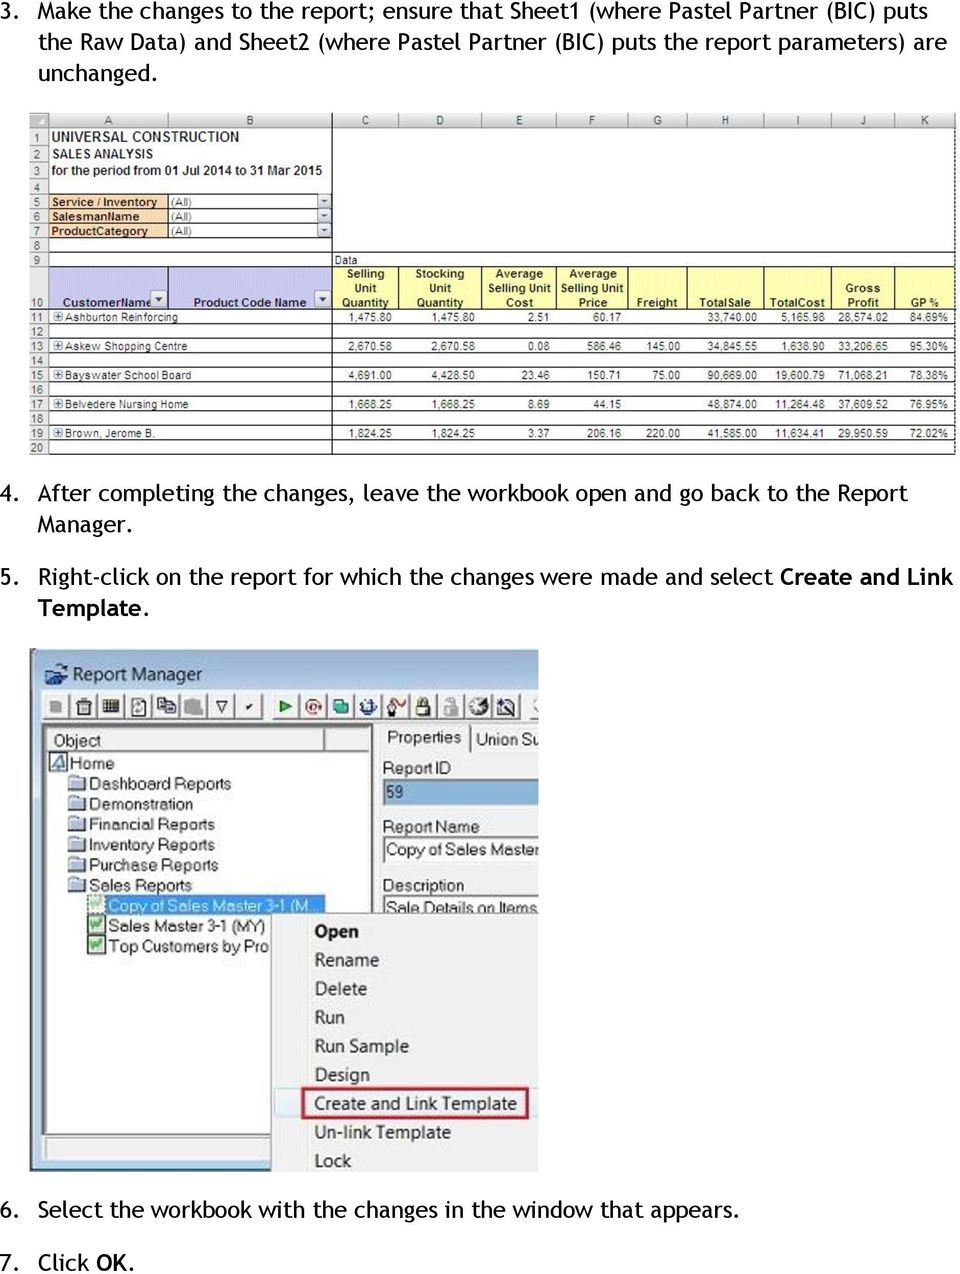 After completing the changes, leave the workbook open and go back to the Report Manager. 5.